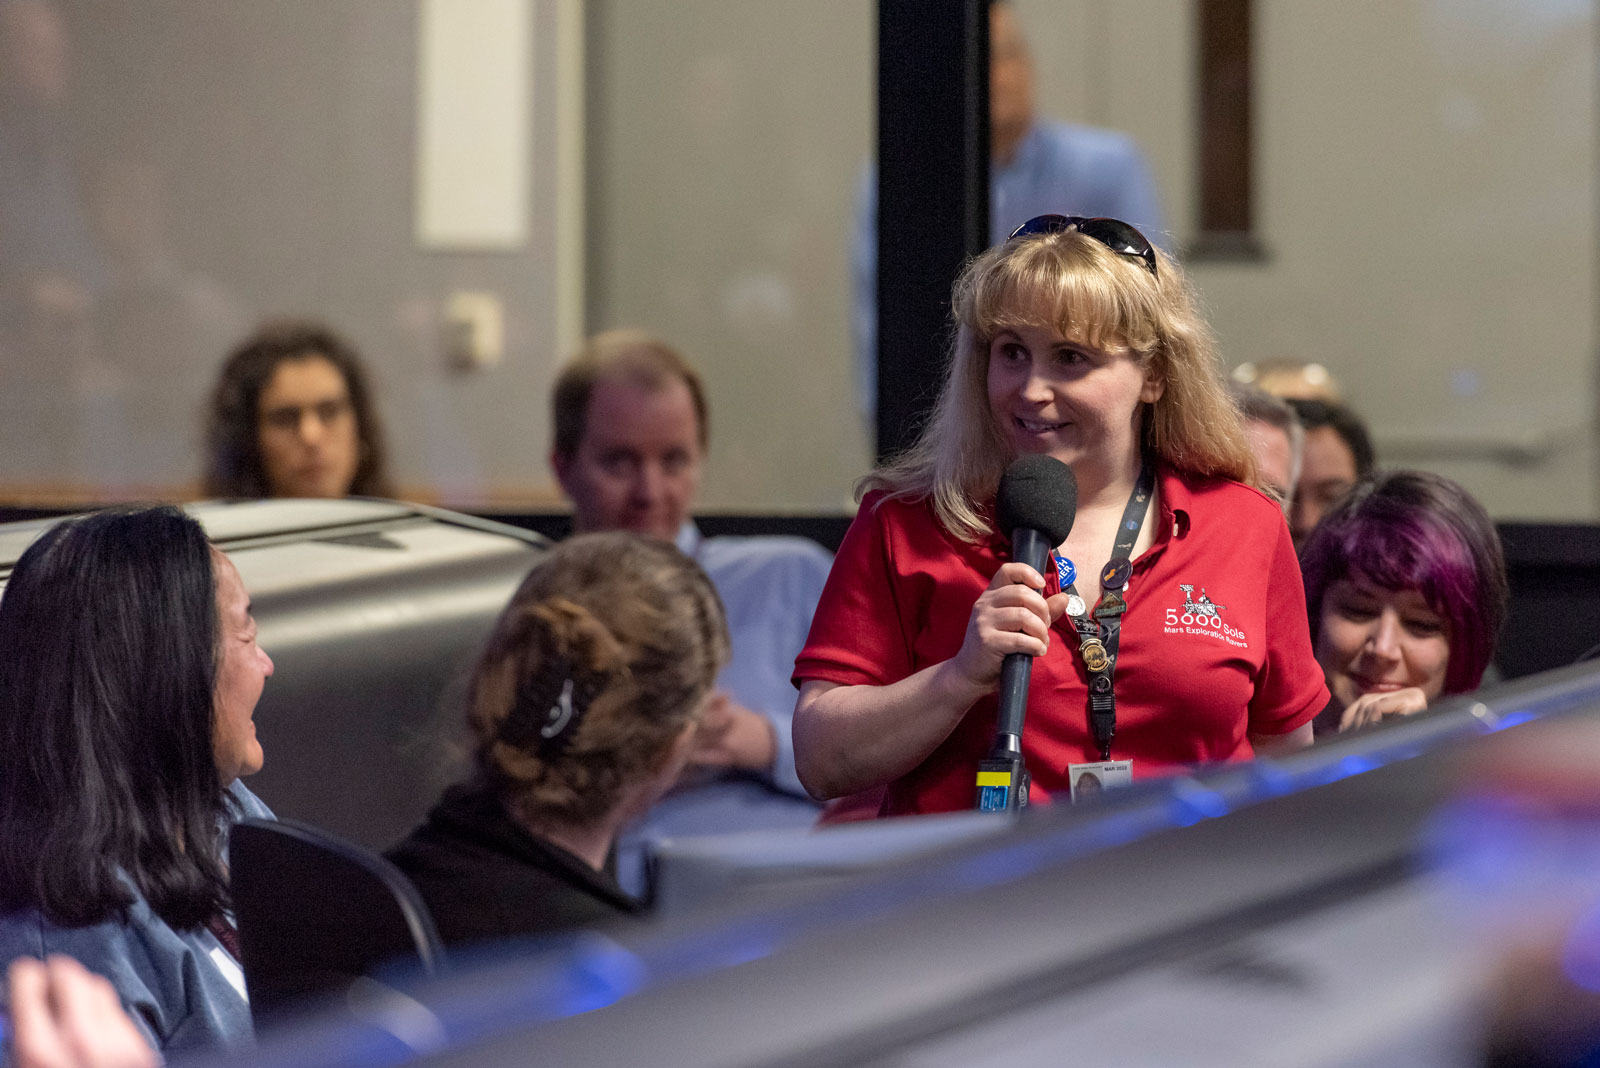 As the NASA Opportunity rover team gathered to talk about the last attempts to listen for the rover's signals from Mars, Ashley Stroupe shared her story about working with the long-lived robotic geologist.